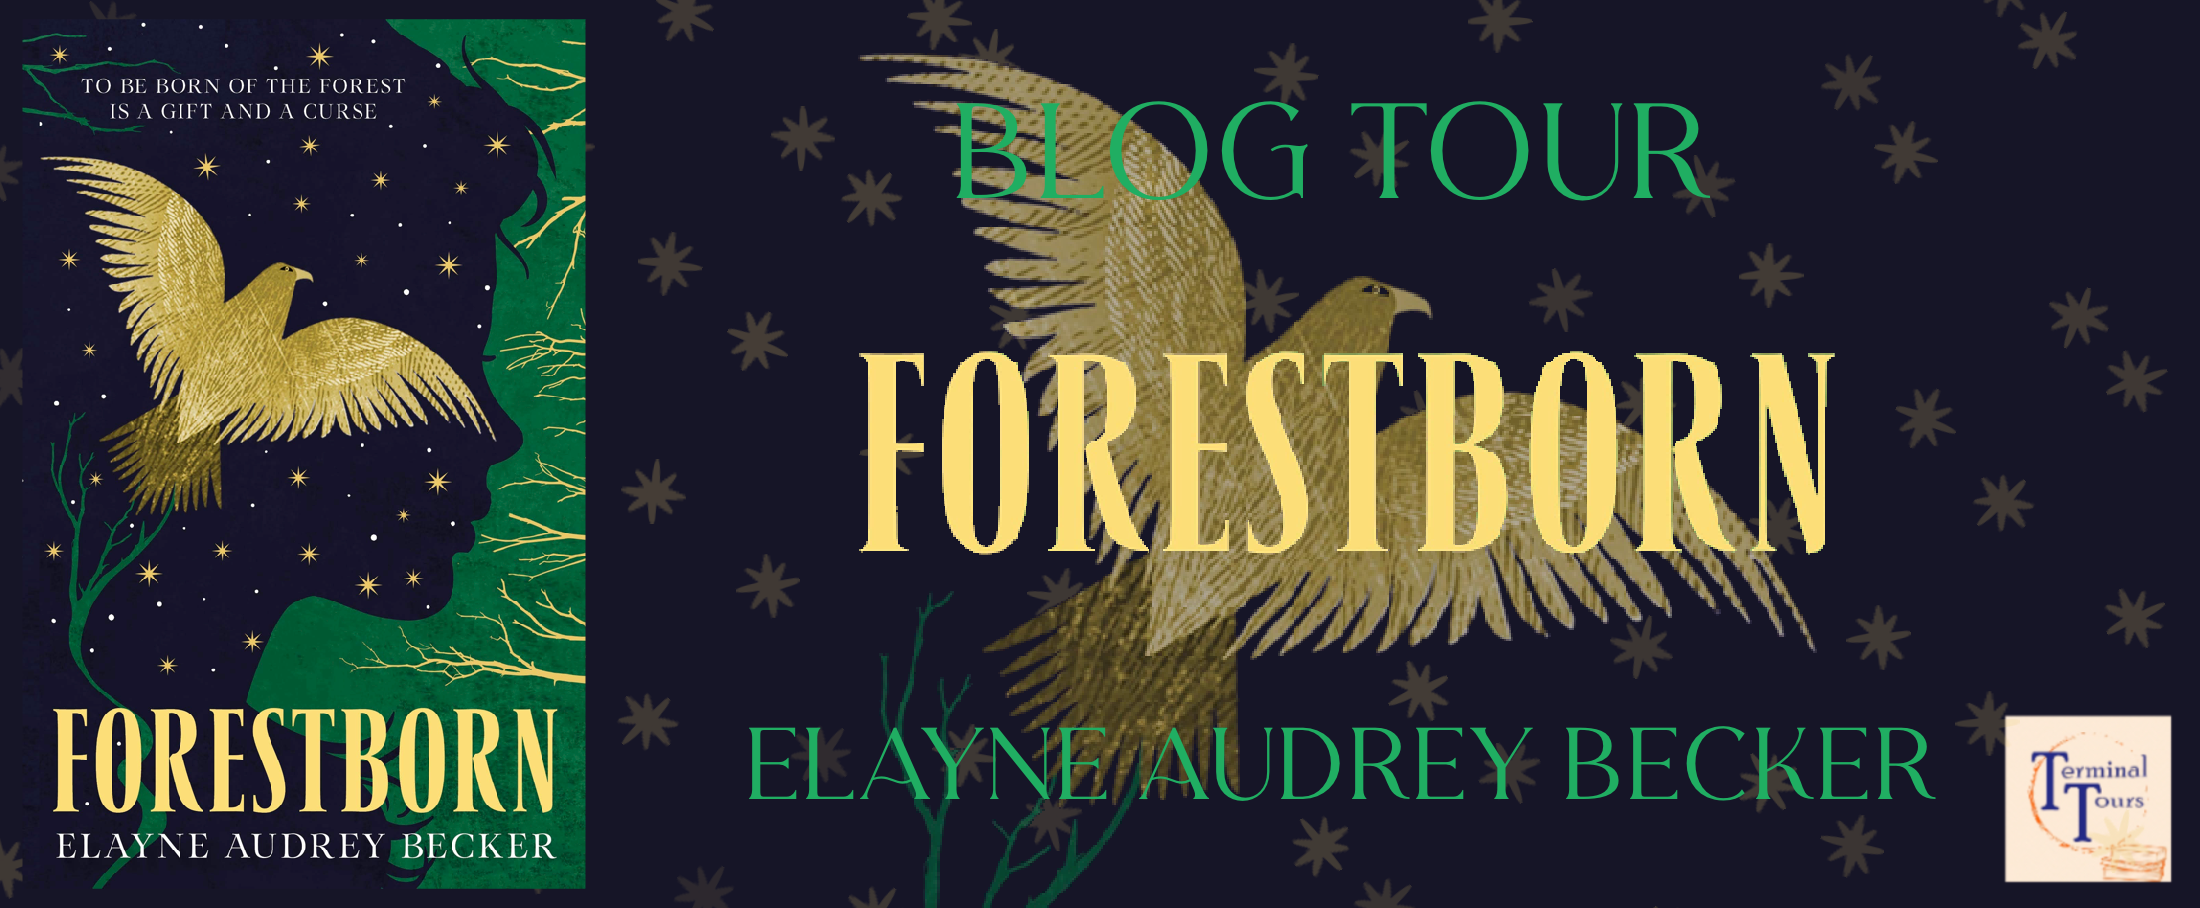 Blog Tour: Forestborn by Elayne Audrey Becker (Guest Post + Aesthetic Board!)